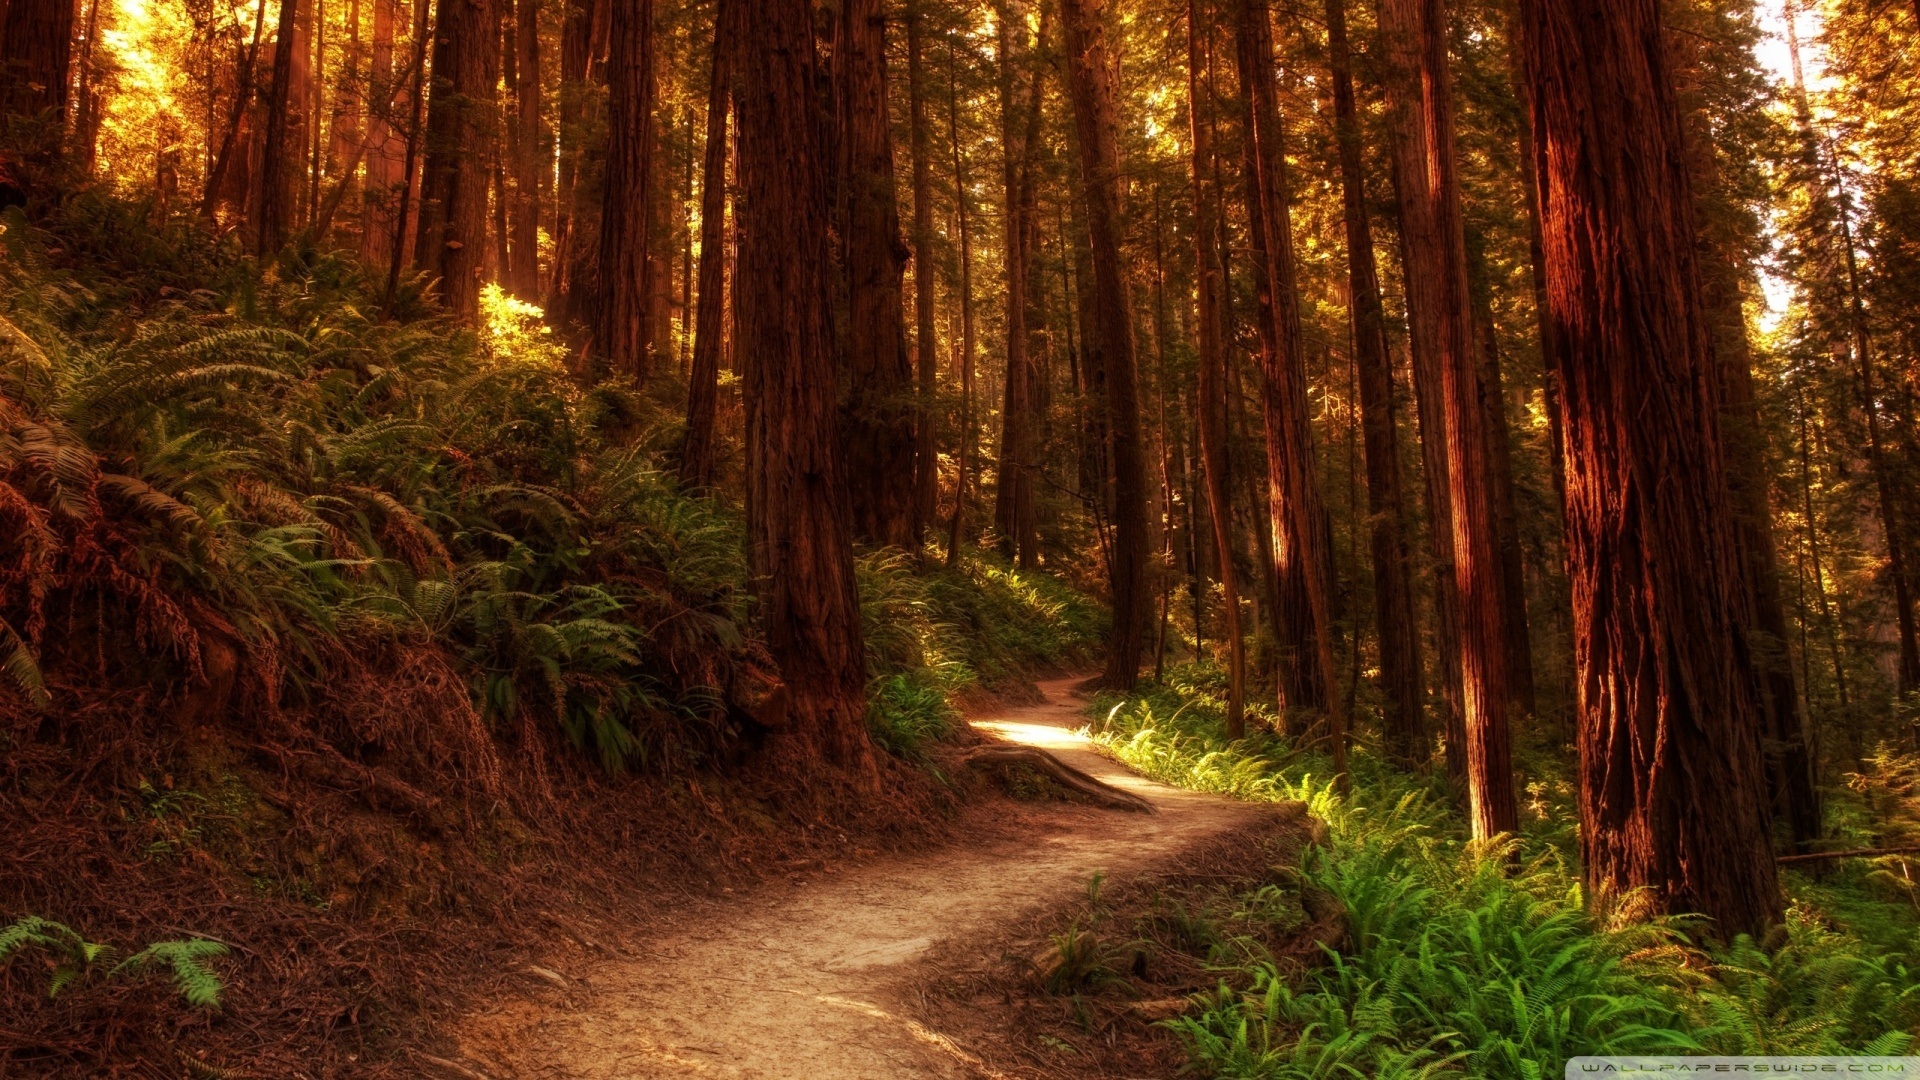 46] Redwoods Backgrounds and Wallpapers on WallpaperSafari 1920x1080